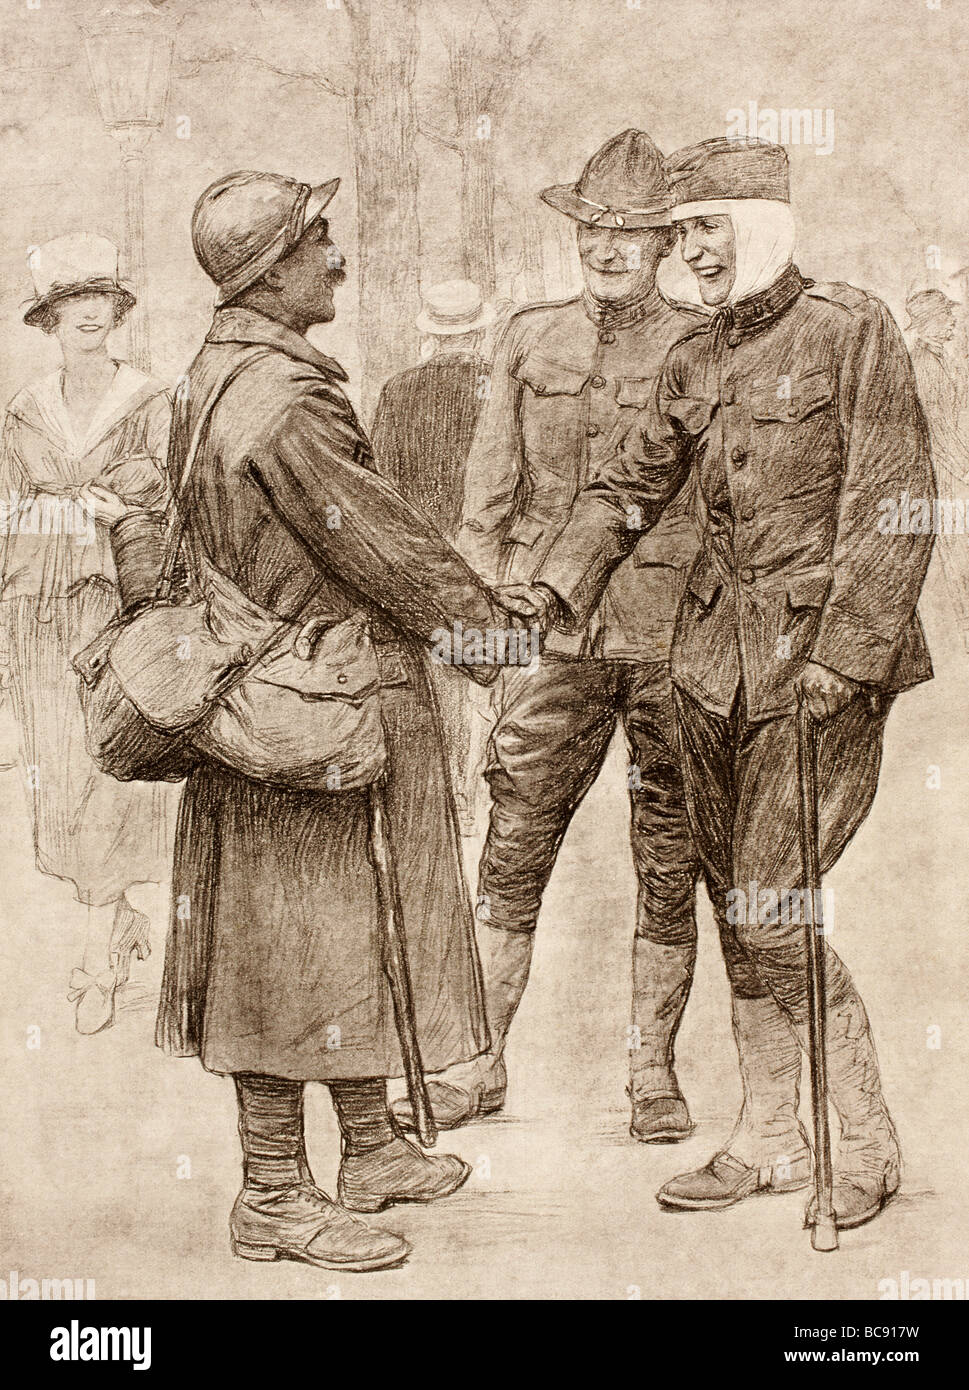 A French soldier on his way to the front greets a convalescing wounded American. - Stock Image